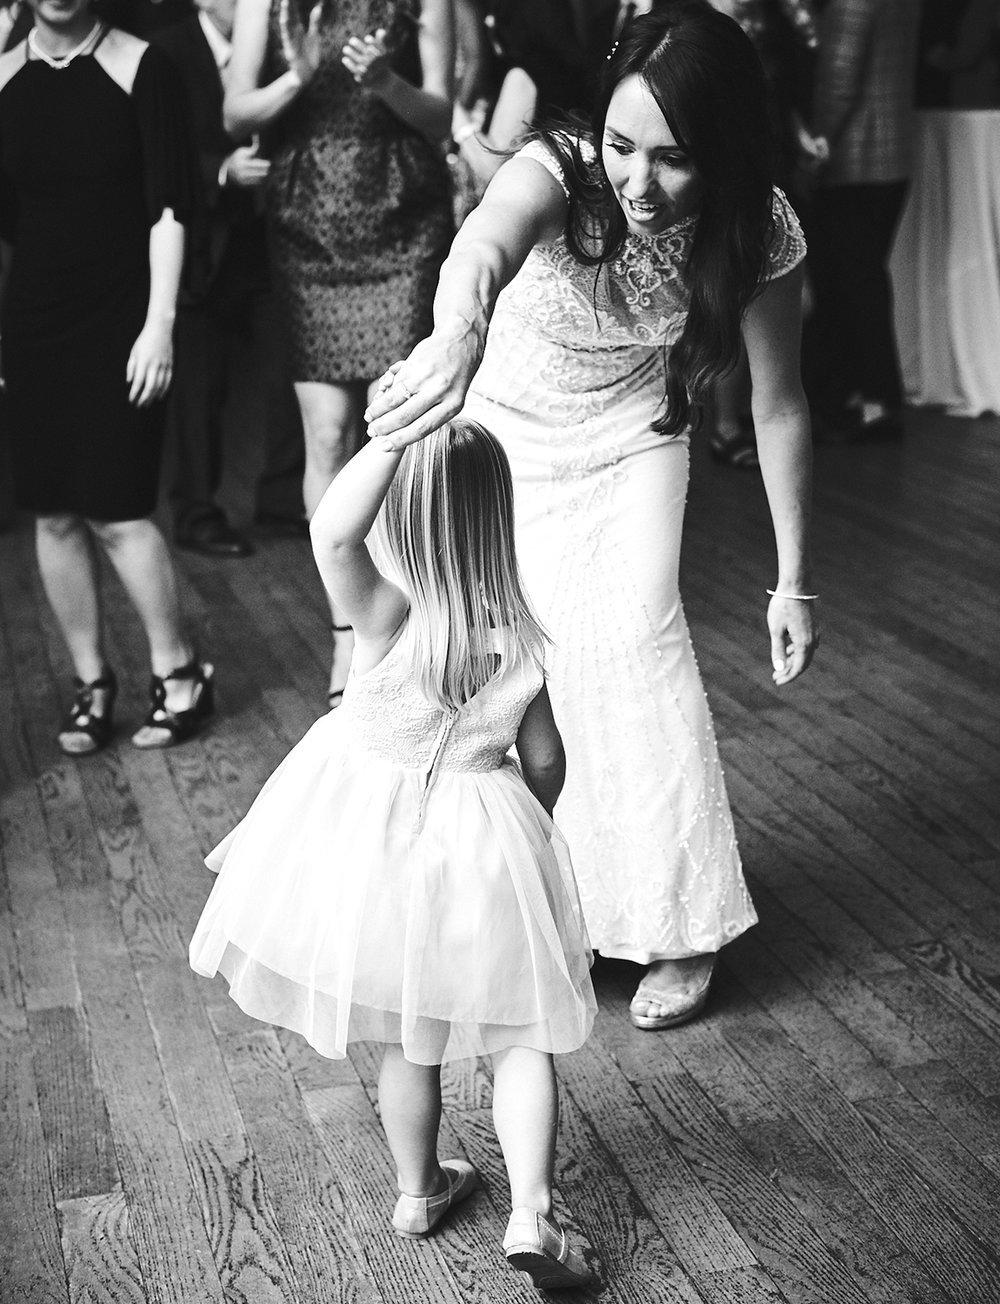 180622_BatteryGardensWeddingPhotography_NYCWeddingPhotographer_BriJohnsonWeddings_0114.jpg